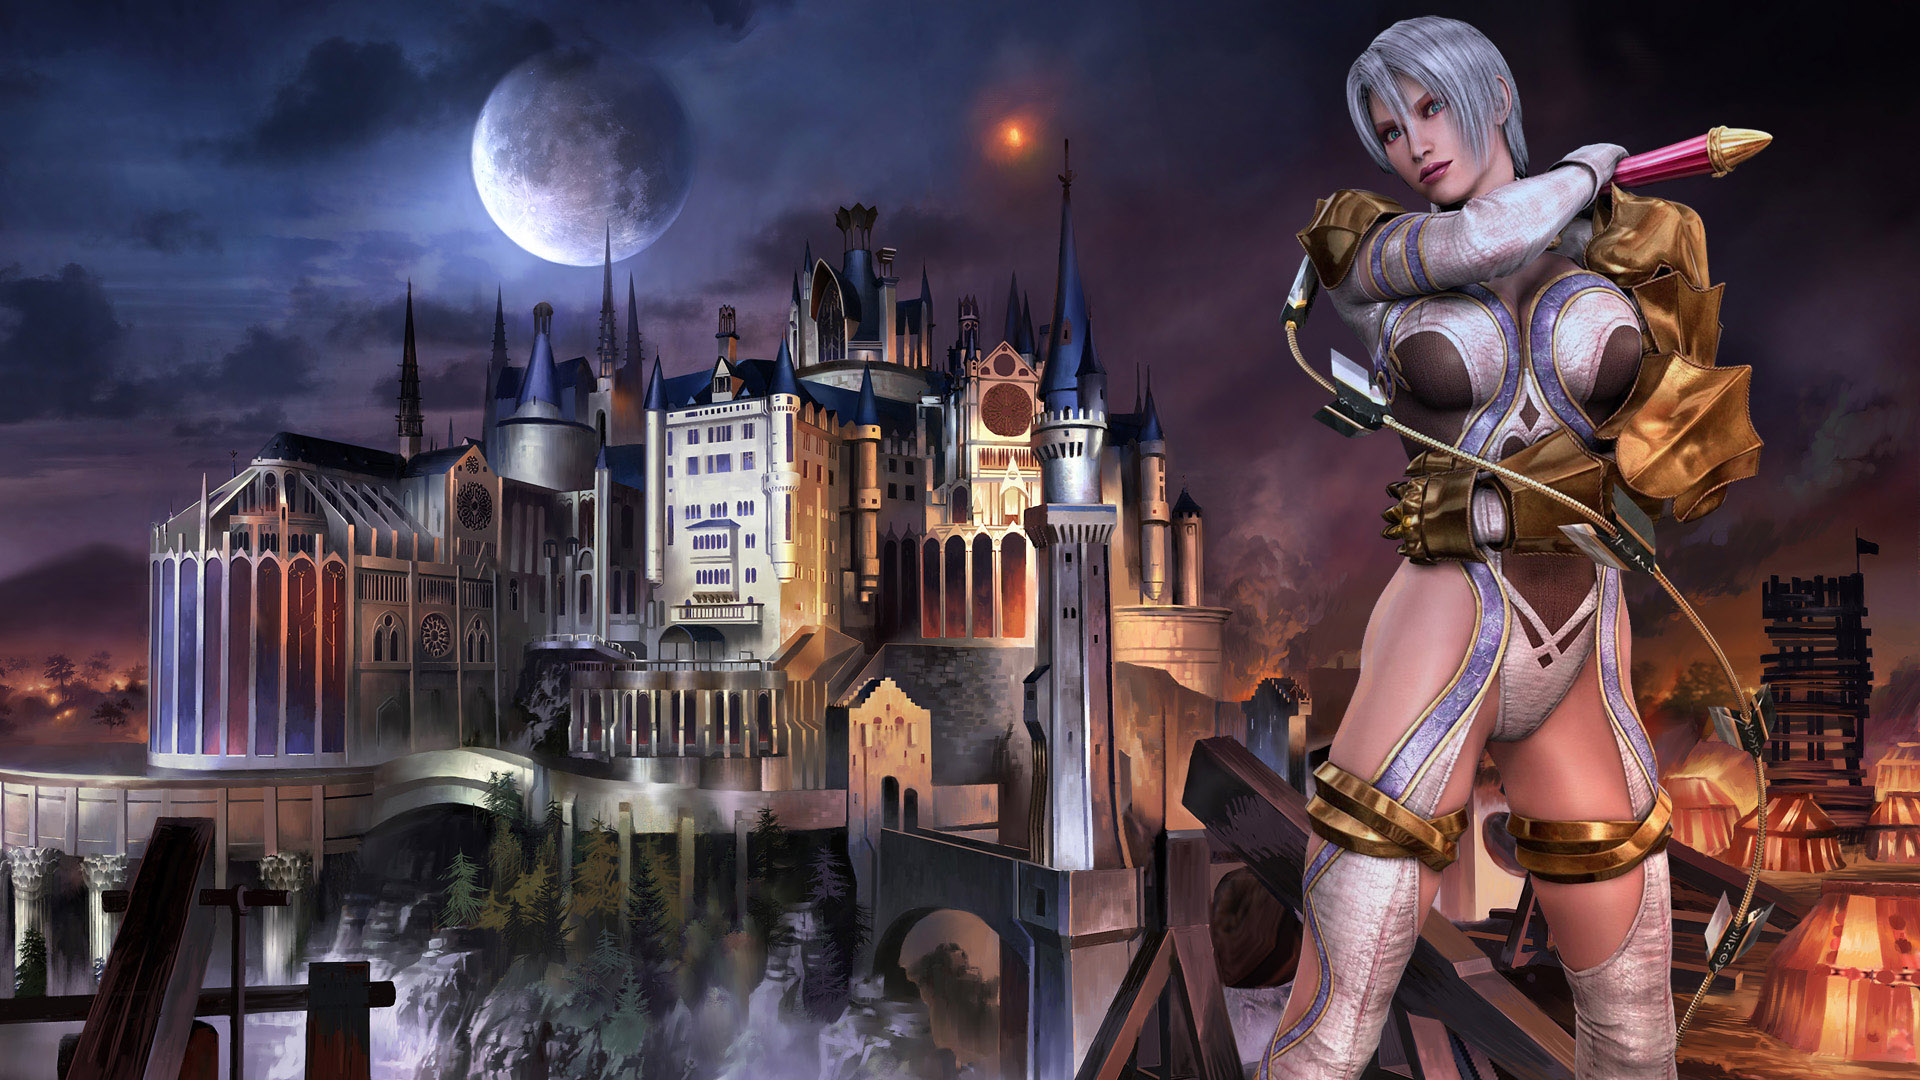 Lost Girl Wallpaper Hd Soulcalibur Dev Wants To Know Fans Favourite Characters